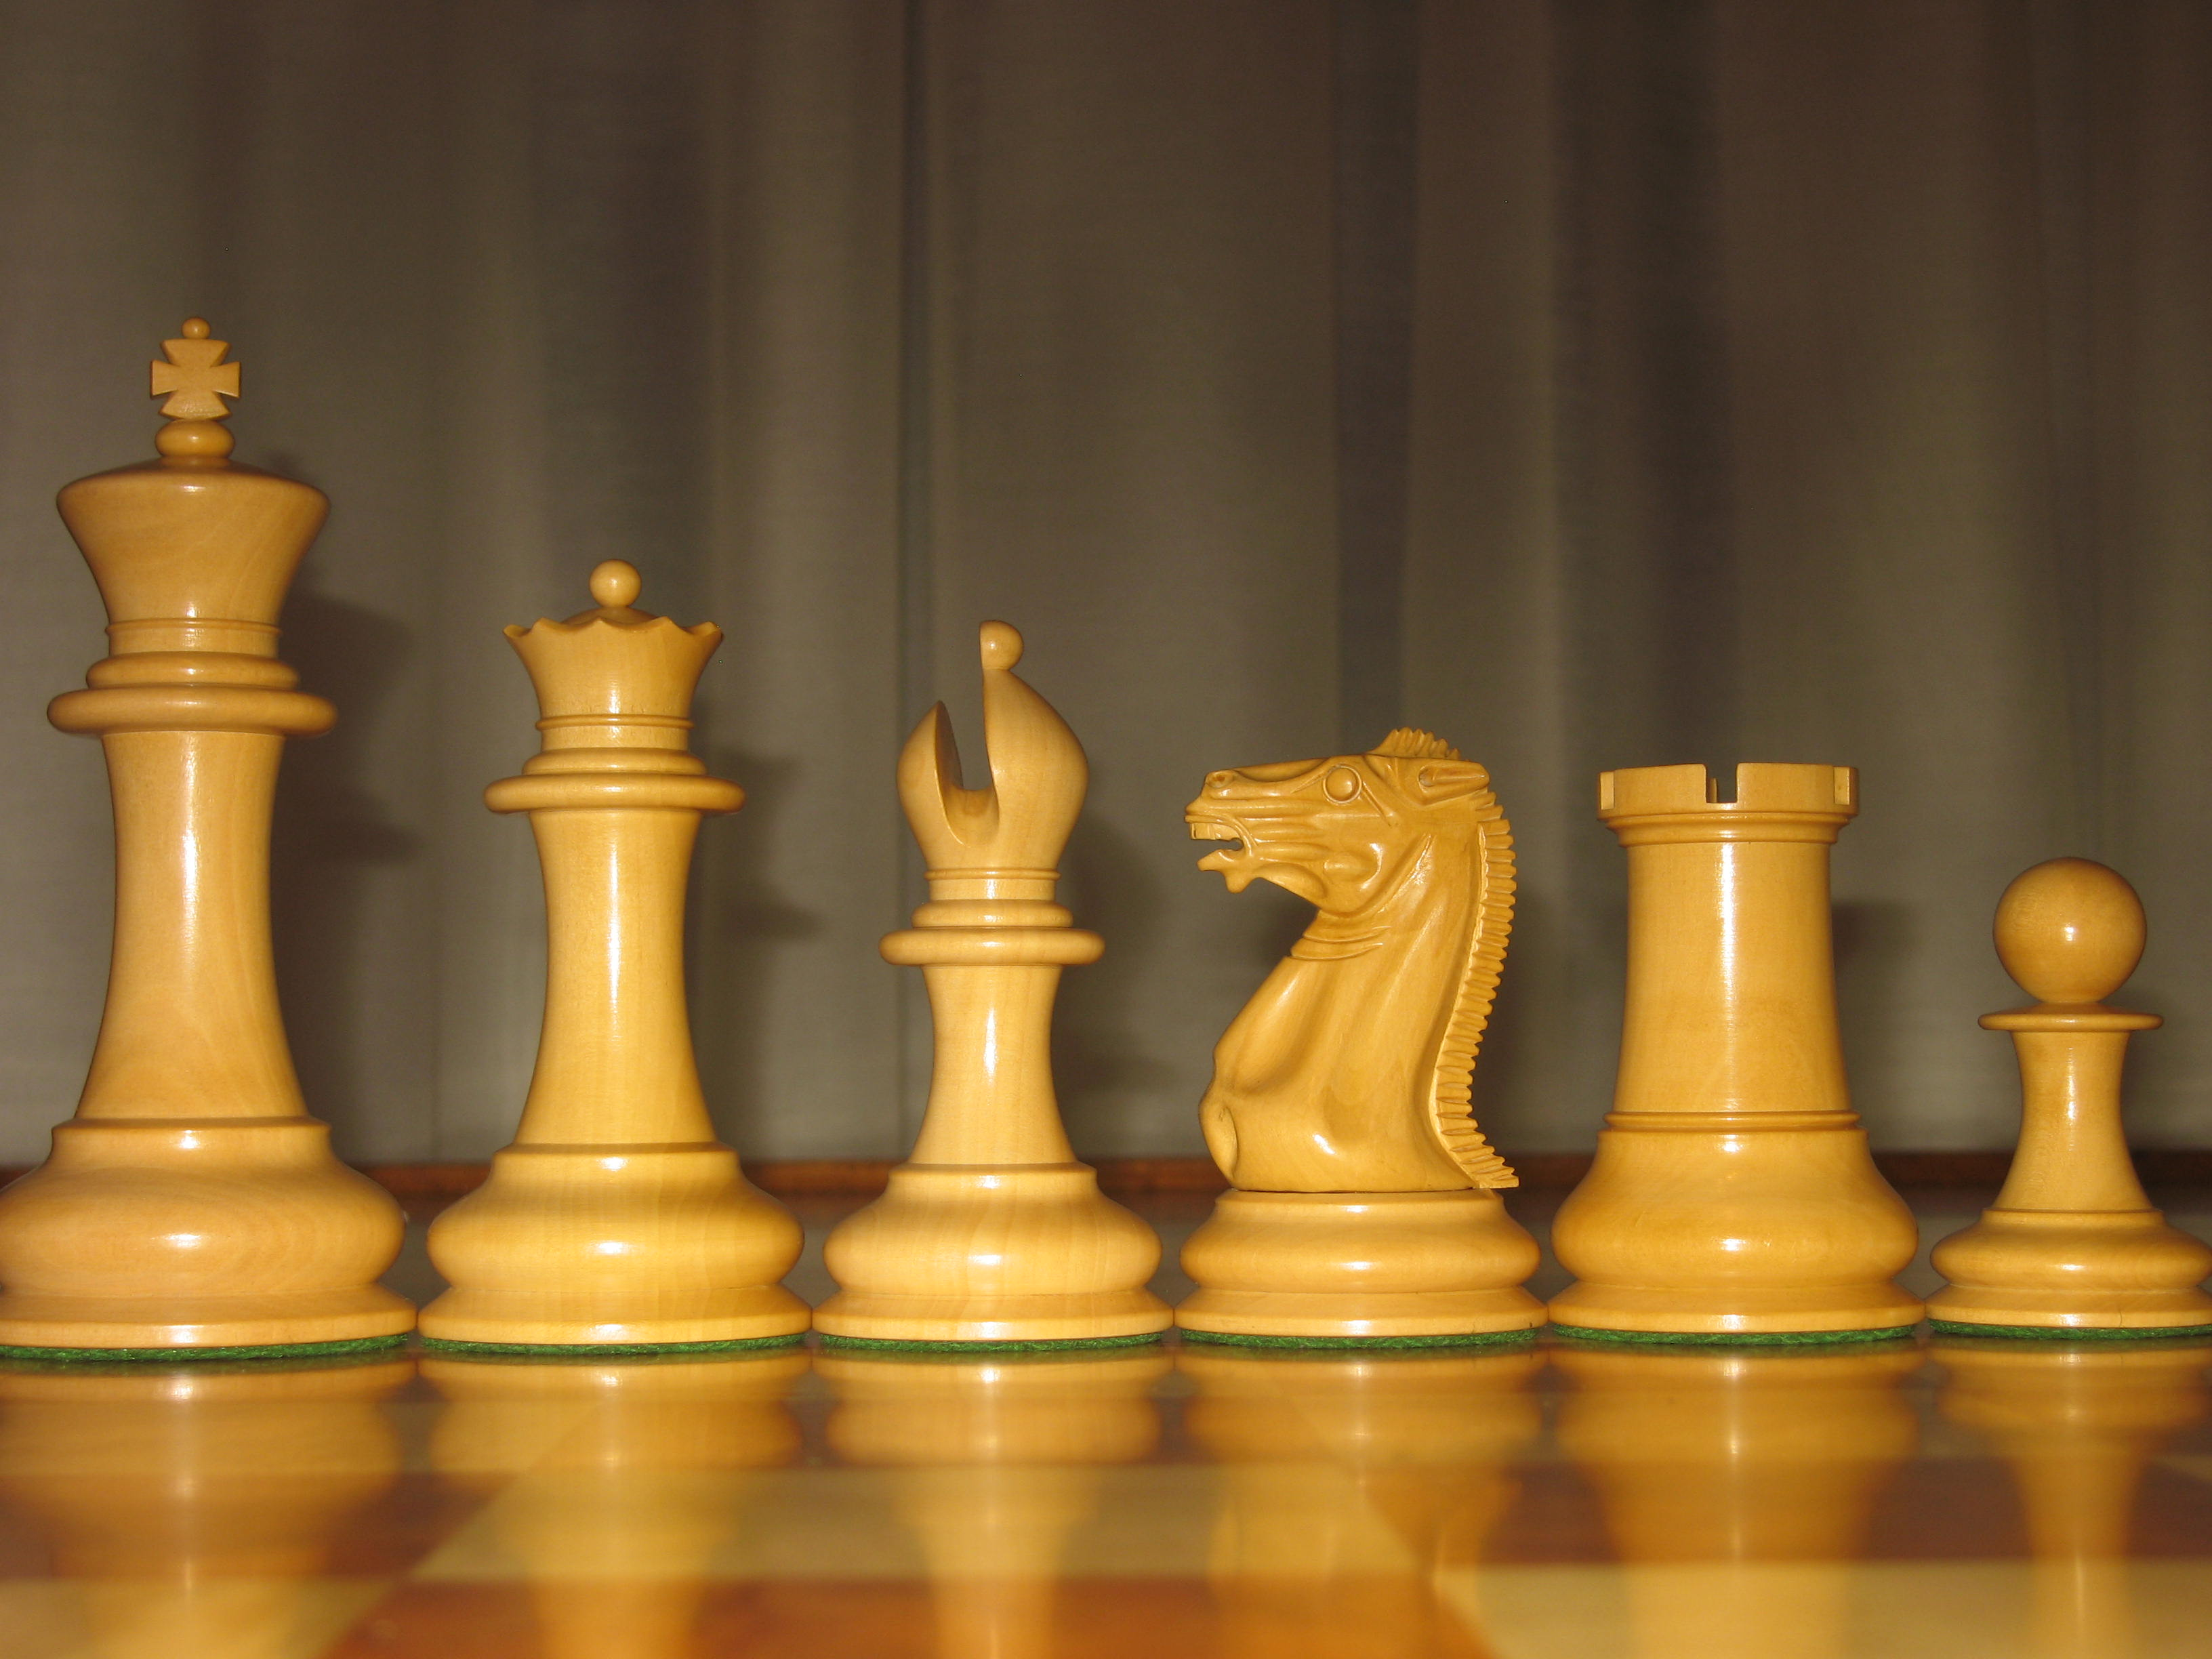 1851 Reproduction Staunton Chessmen By The Official